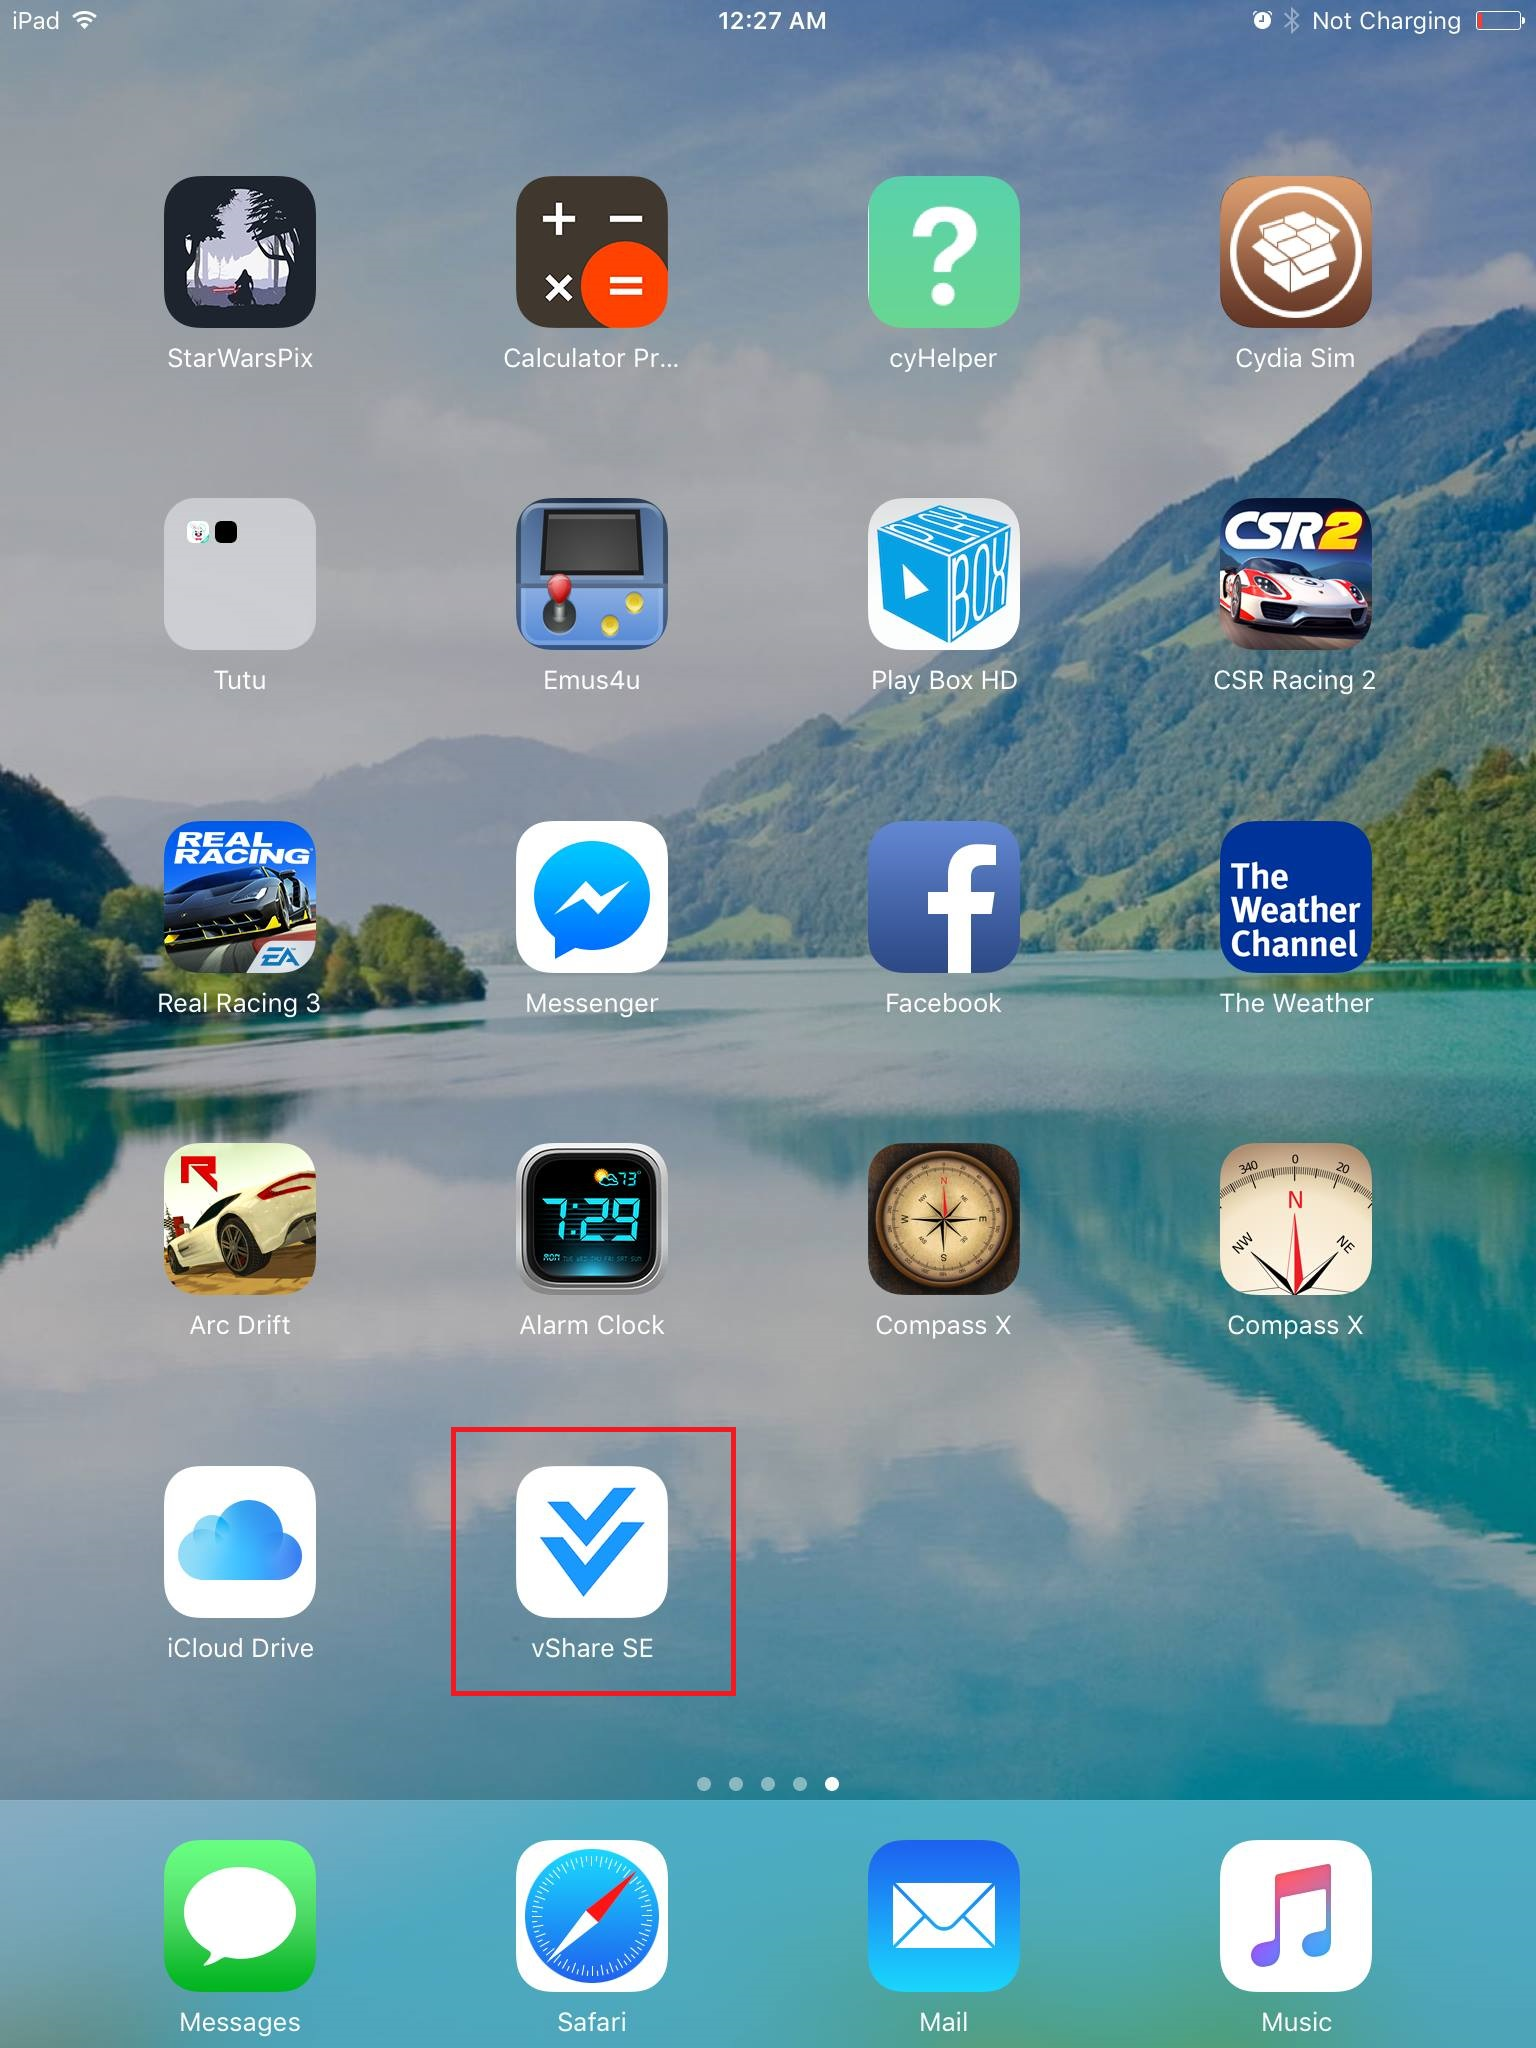 vShare App icon on iOS Home screen